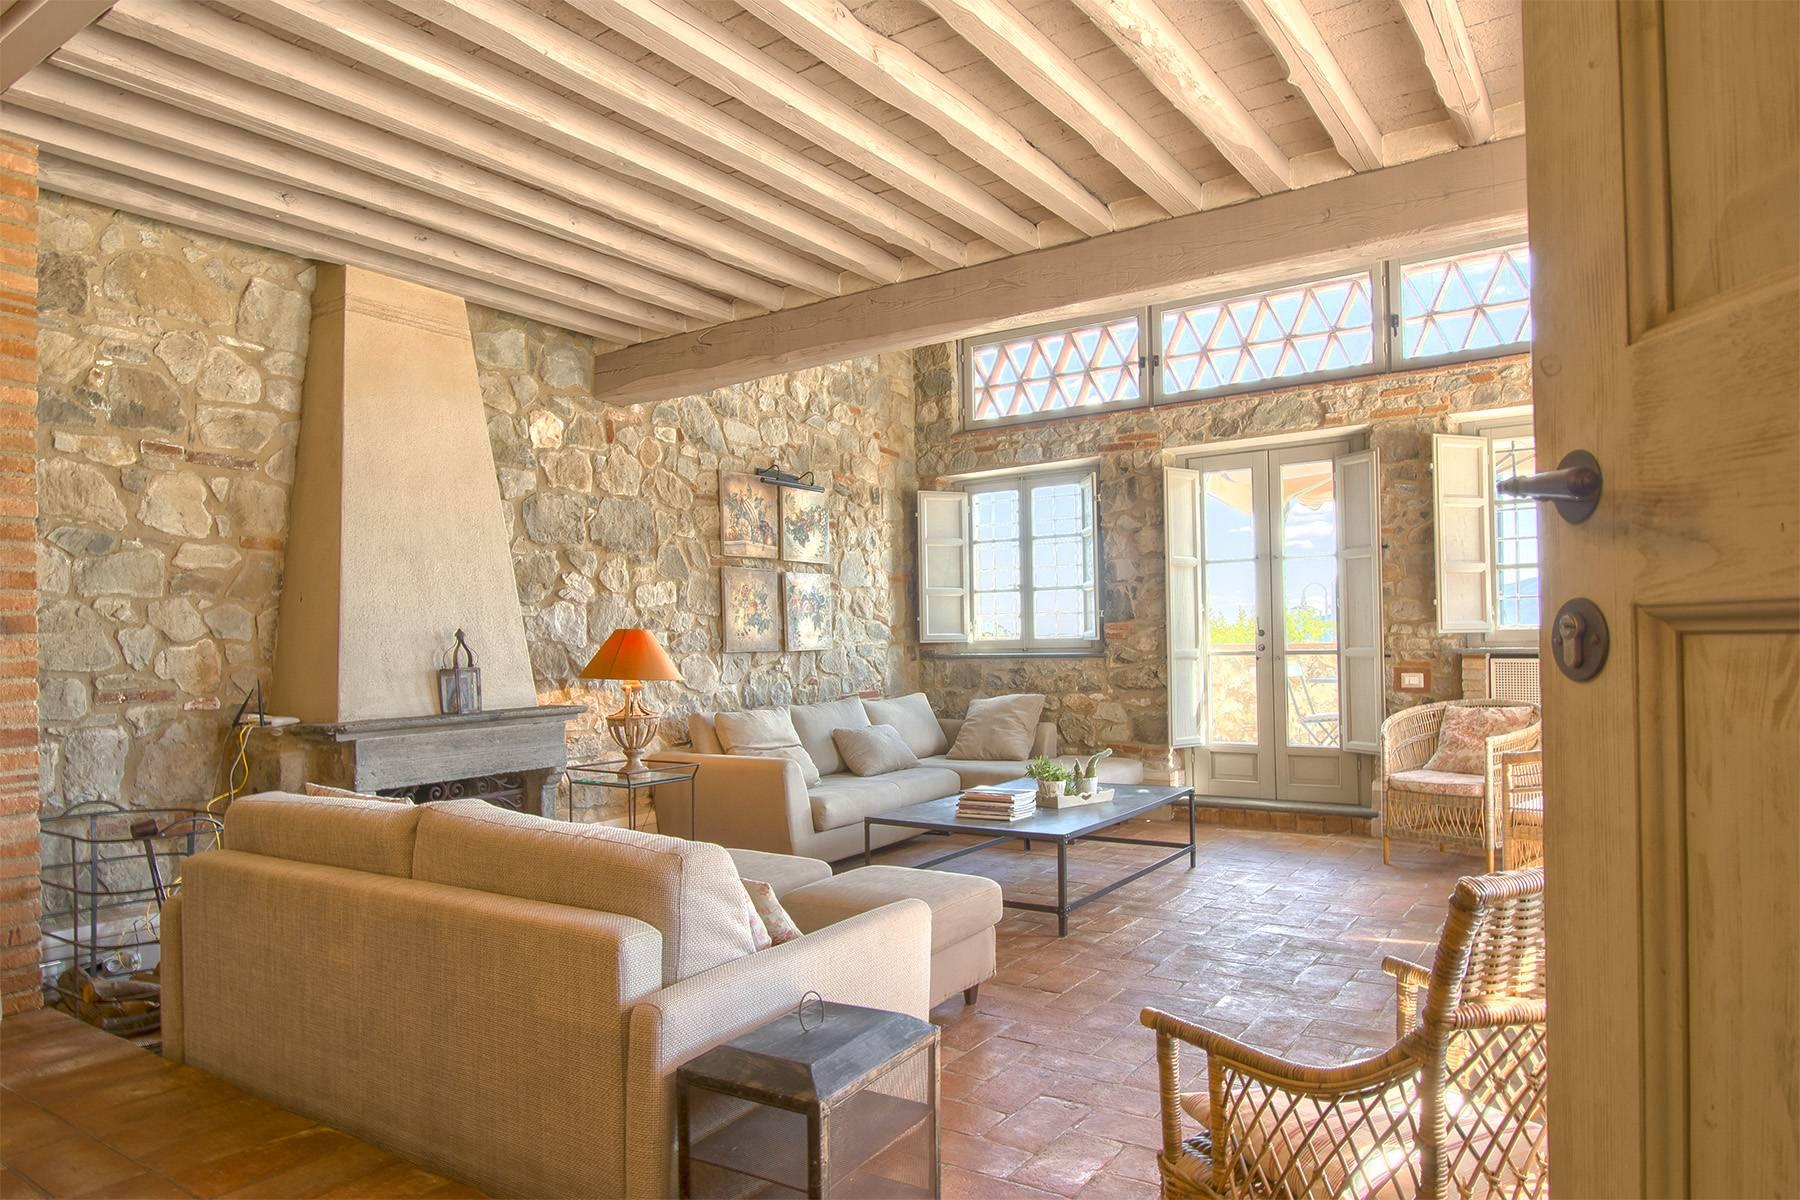 Stunning Country villa on the hills of Lucca with vineyard - 6